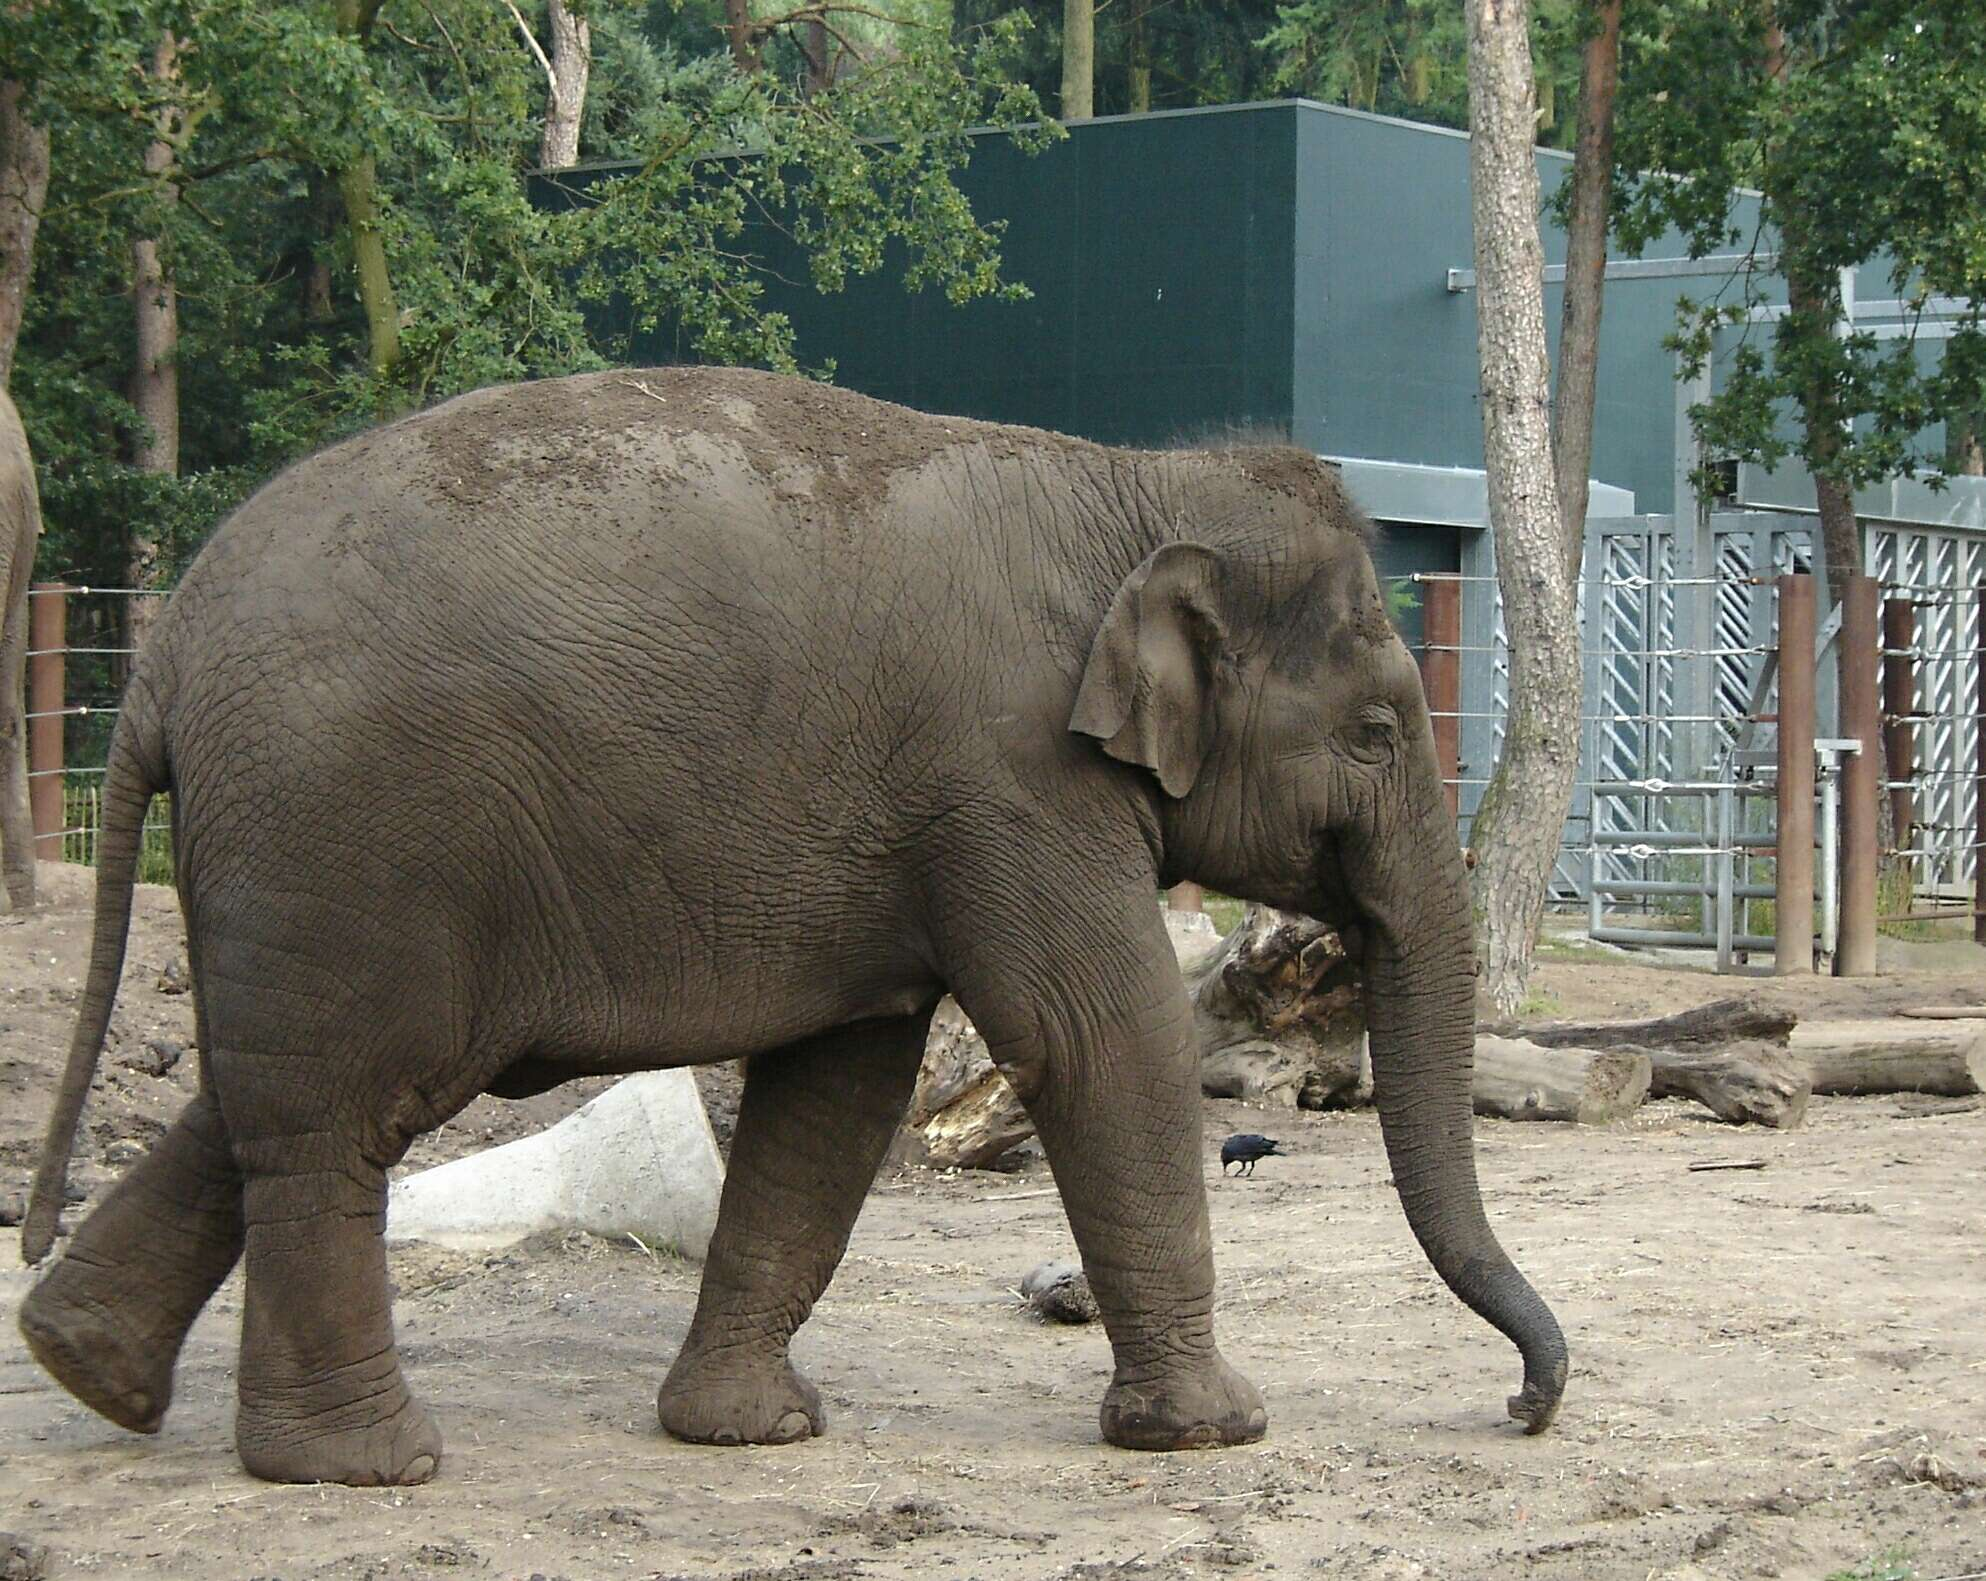 http://upload.wikimedia.org/wikipedia/commons/1/1f/AmersfoortZooYoungAsianElephant.jpg